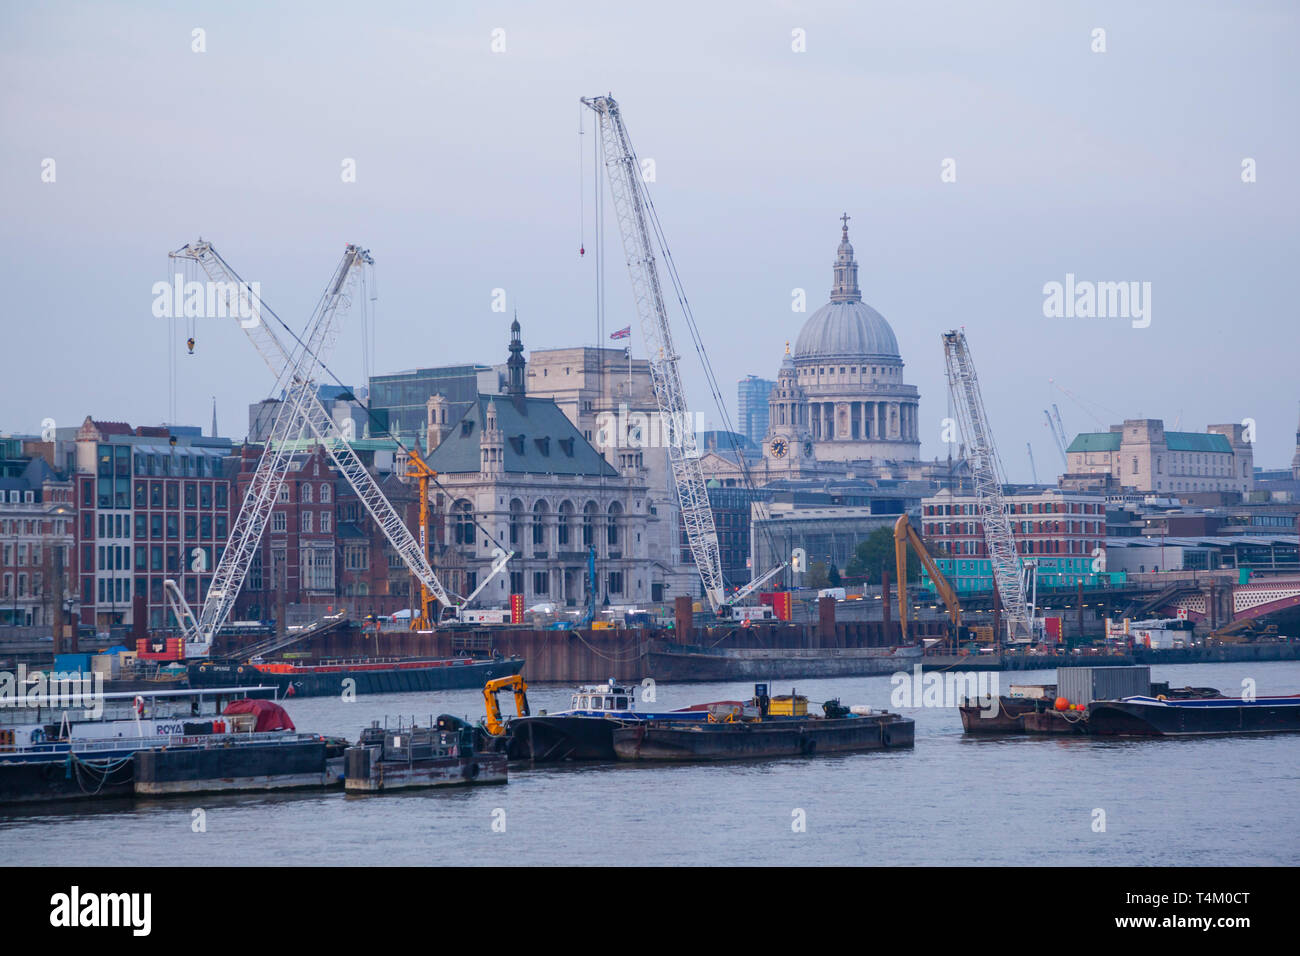 St. Paul's Cathedral in the evening light at dusk with cranes on the river - Stock Image